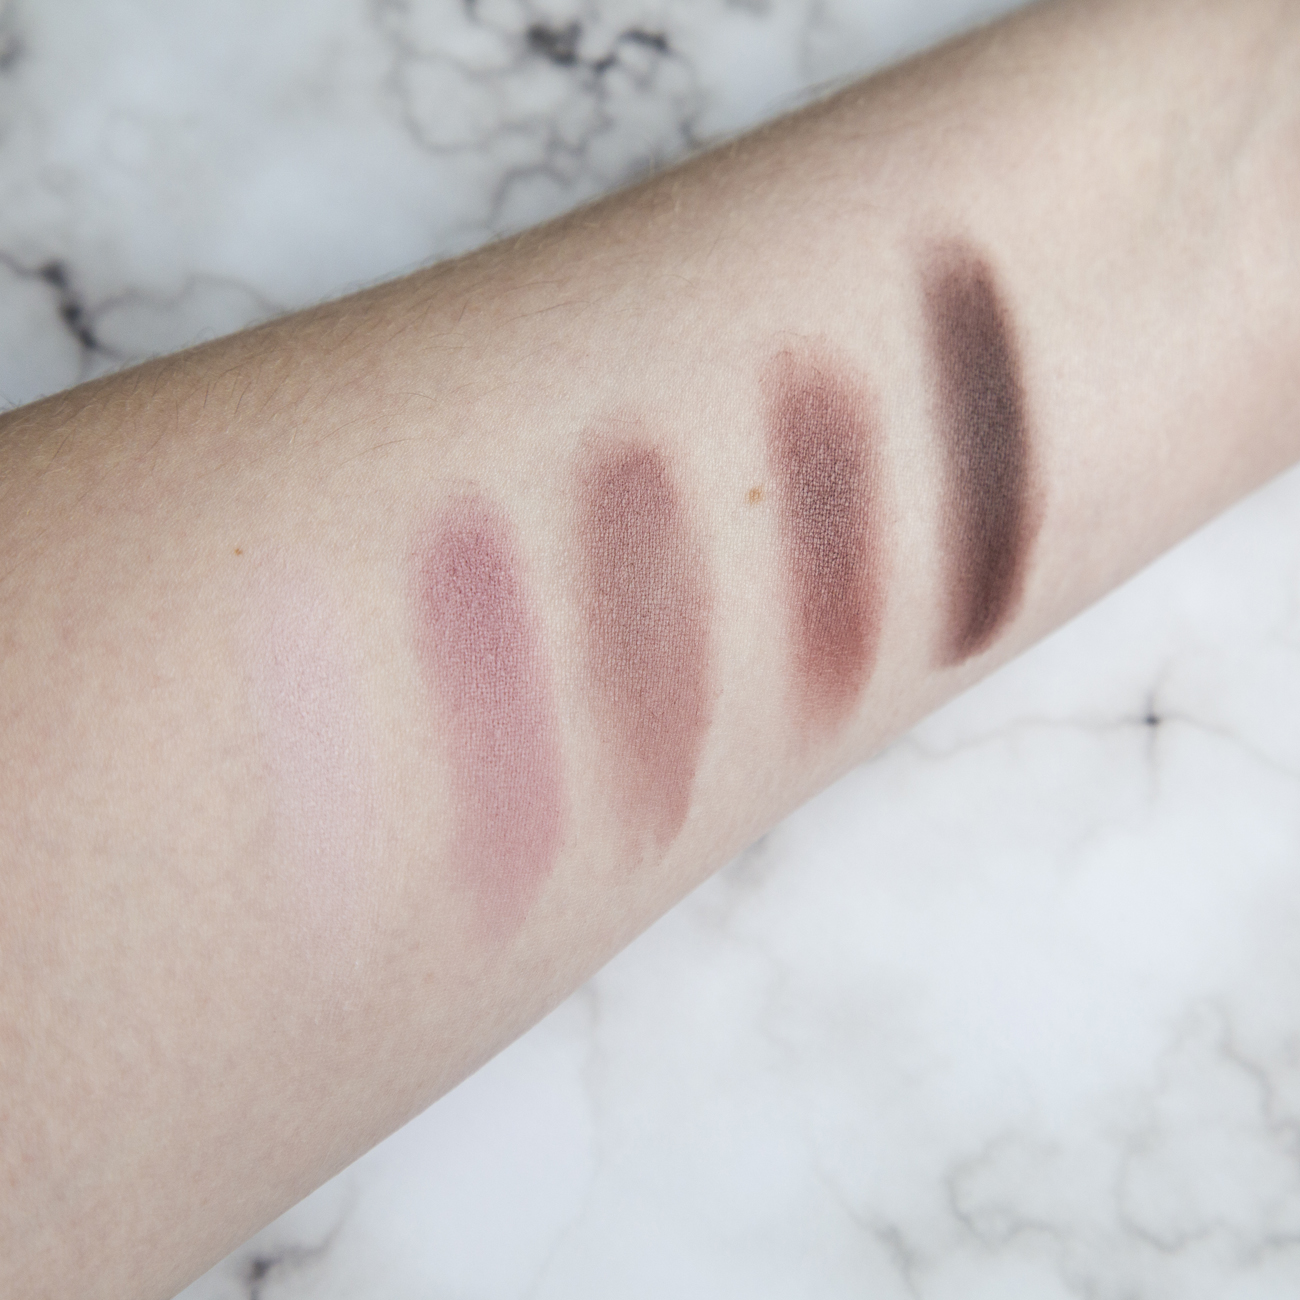 Dose of Colors Marvelous MauvesL-R; Fluffy (which you can barely see on my skin tone), Rosy, Wishy Washy, Spaced Out, and Wine Stain